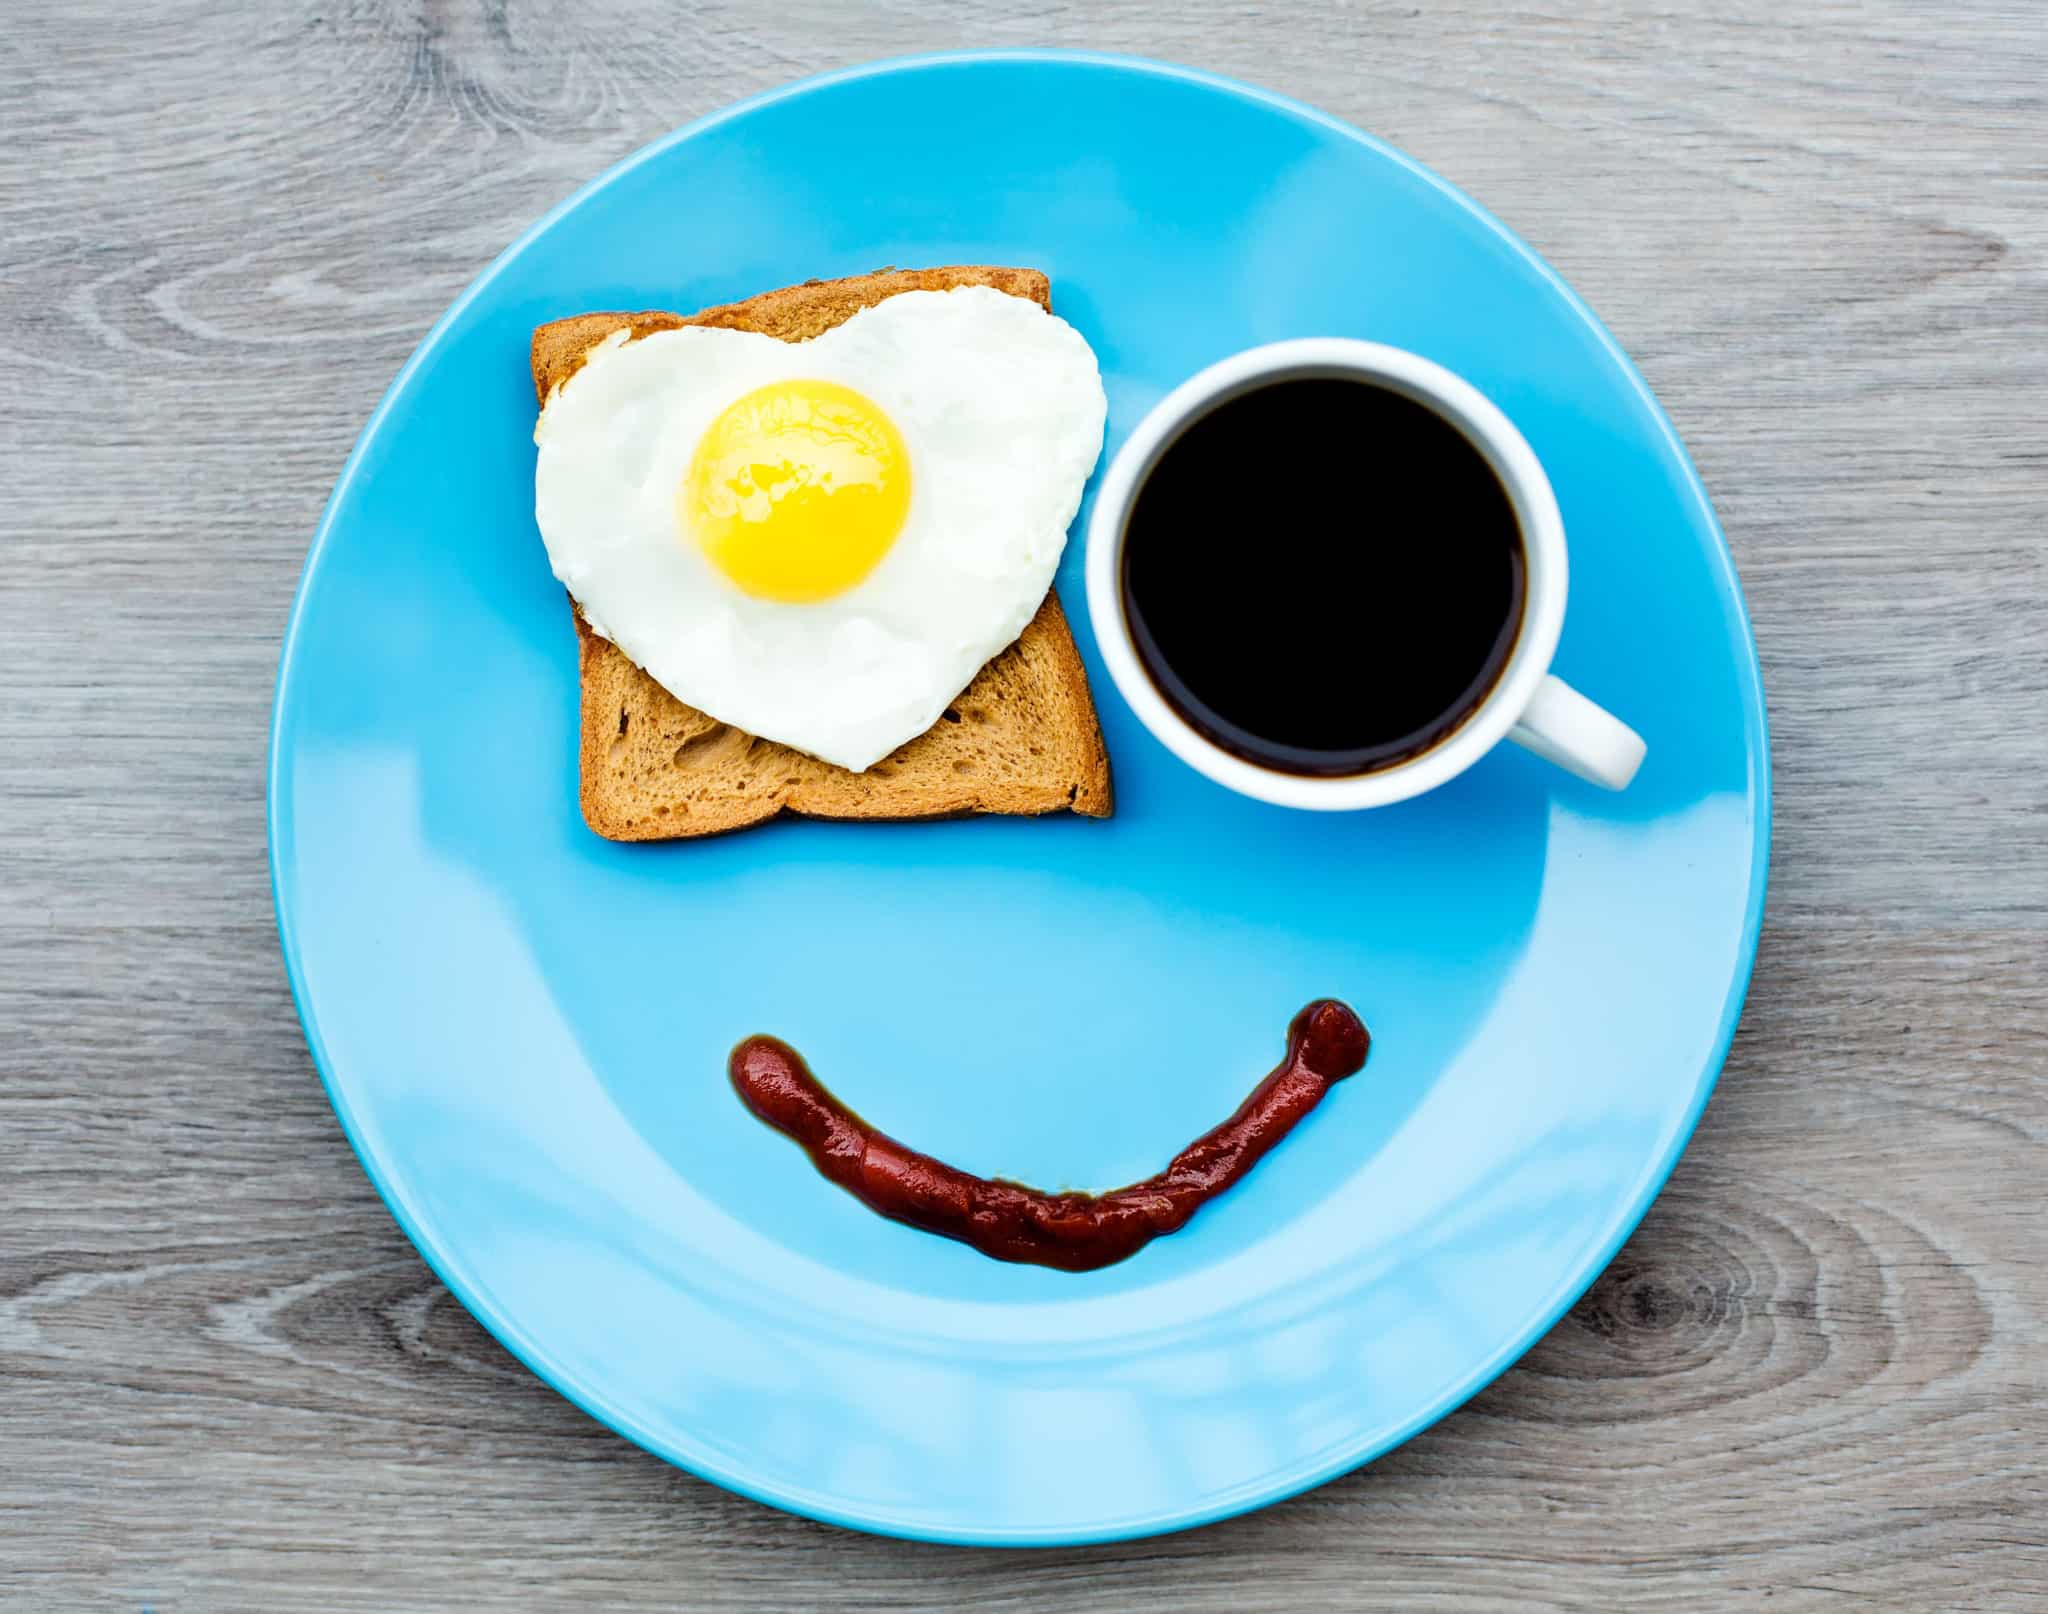 A blue plate with a piece of toast, egg, and coffee.